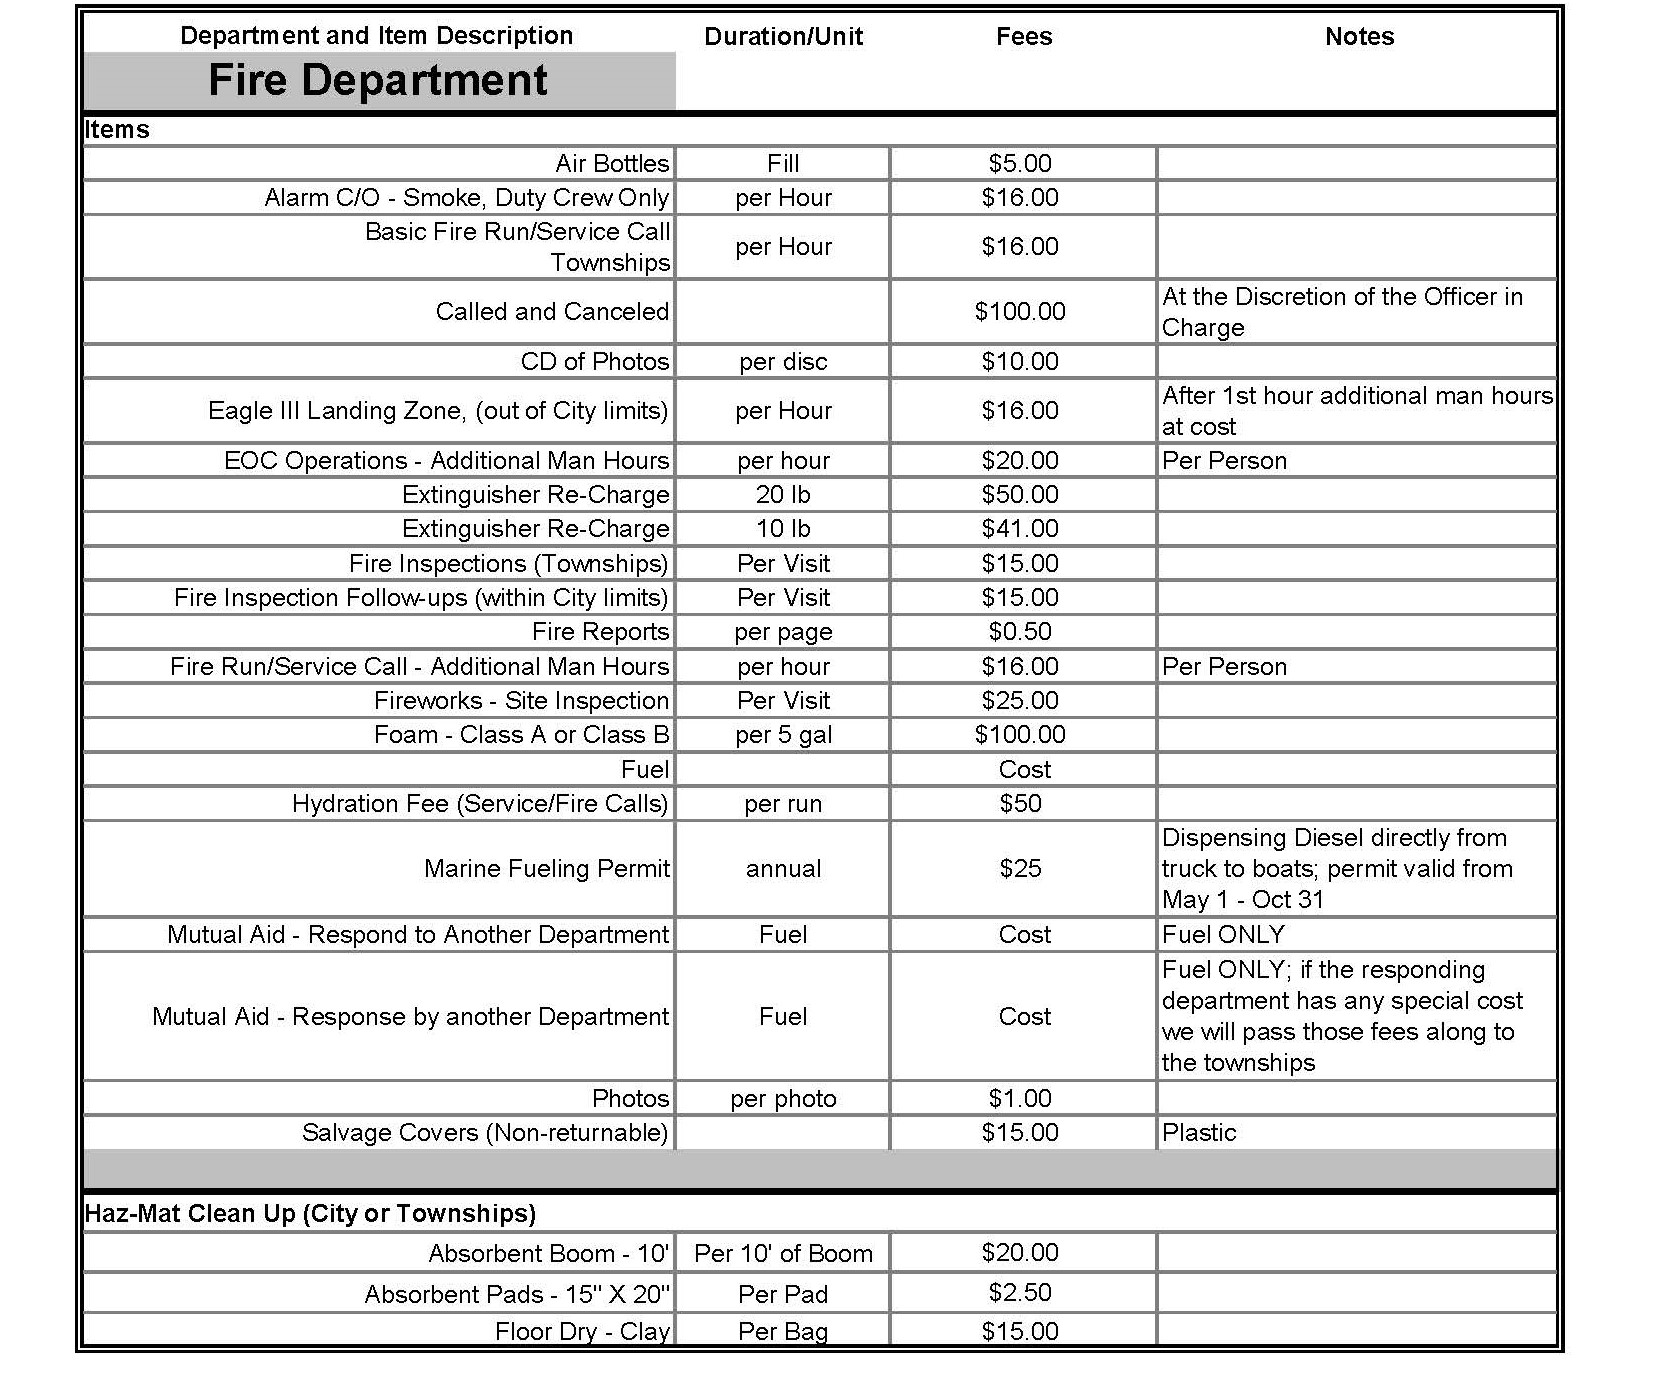 1 Fee Schedule (2019 Revision)_Page_12.jpg